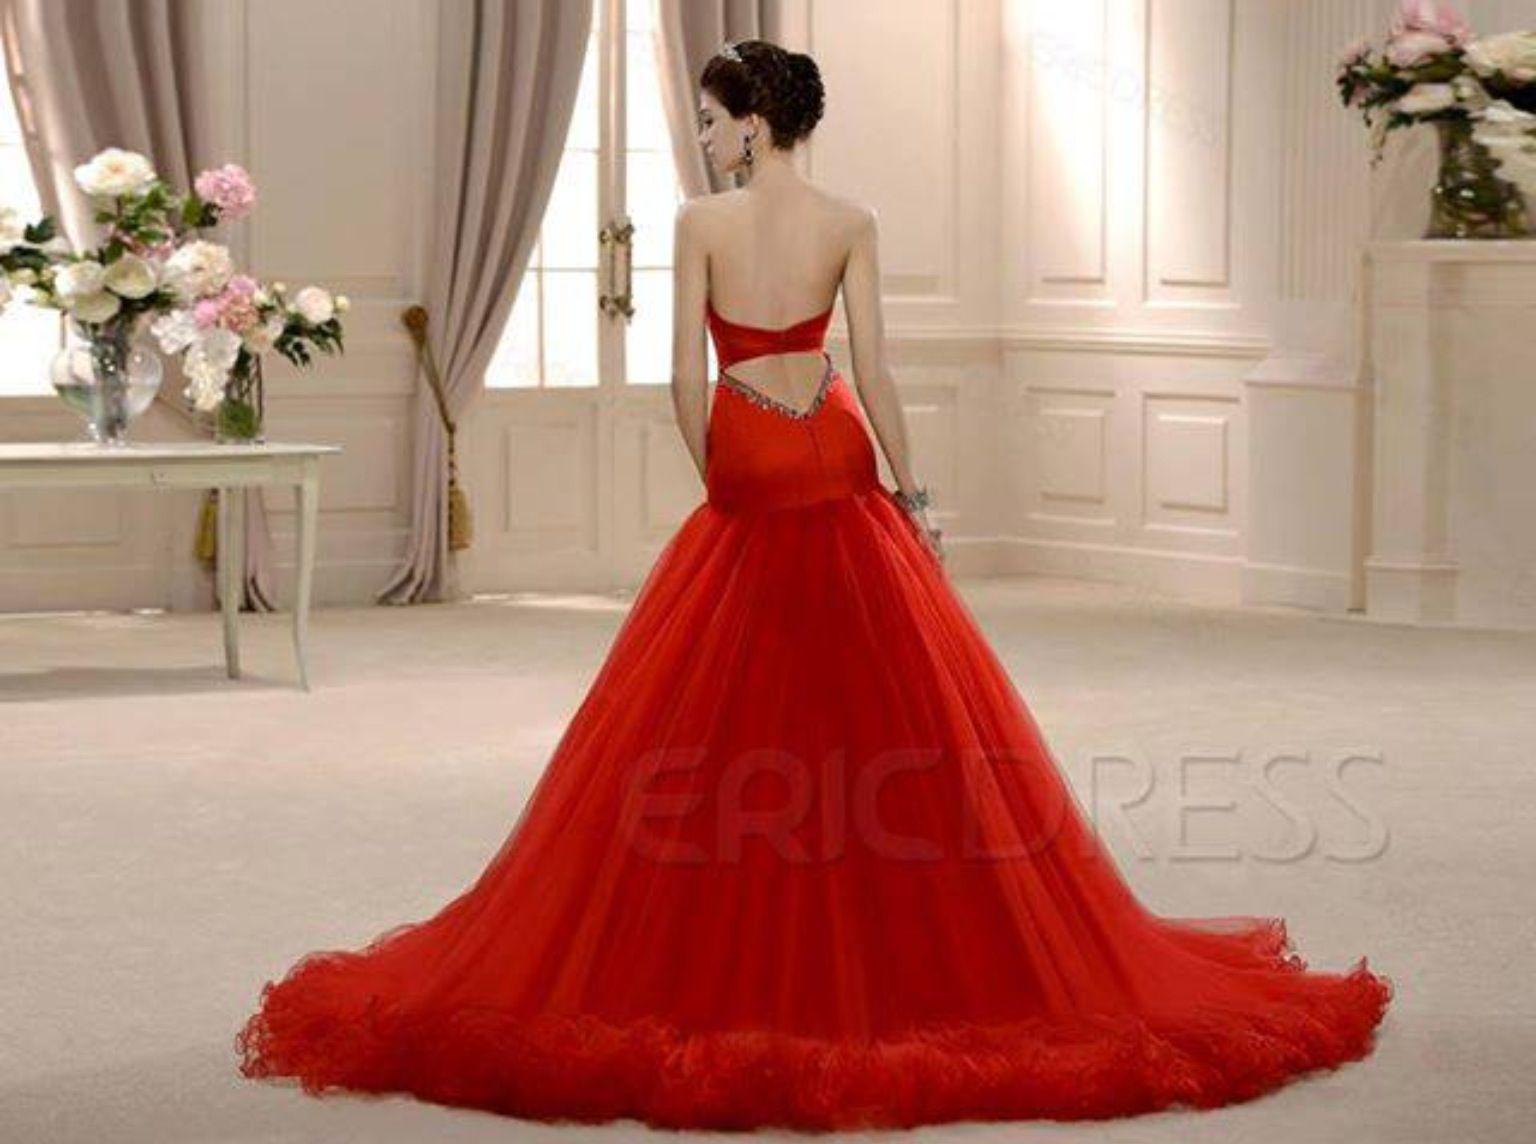 Long red dress for wedding  Wedding dress ideas red unique unusual  Wedding Dress Heaven